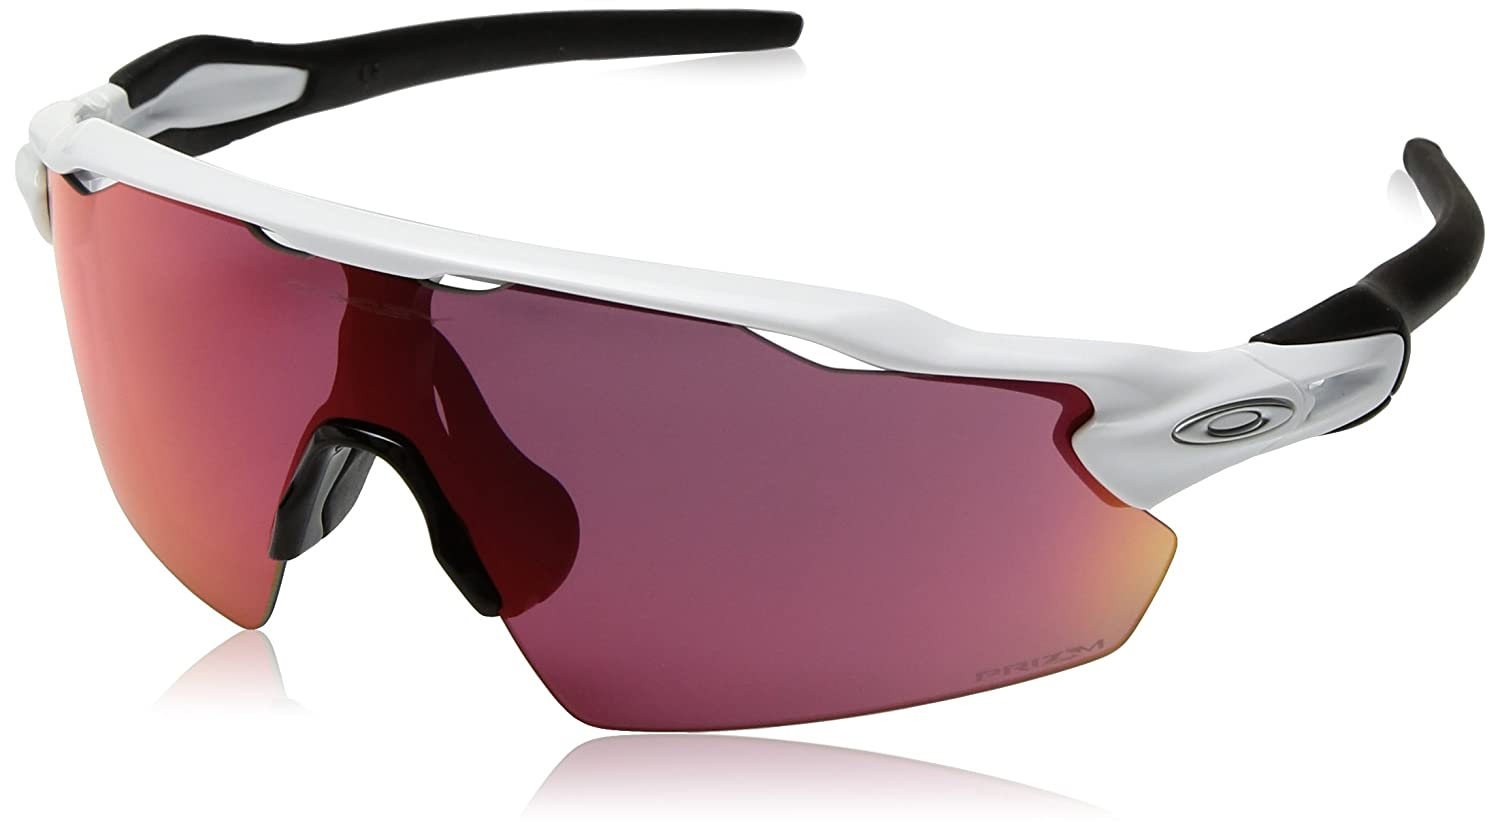 a8d3ebf508d5d Amazon.com  Oakley Men s Prizm Baseball Radar EV Pitch Sunglasses ...